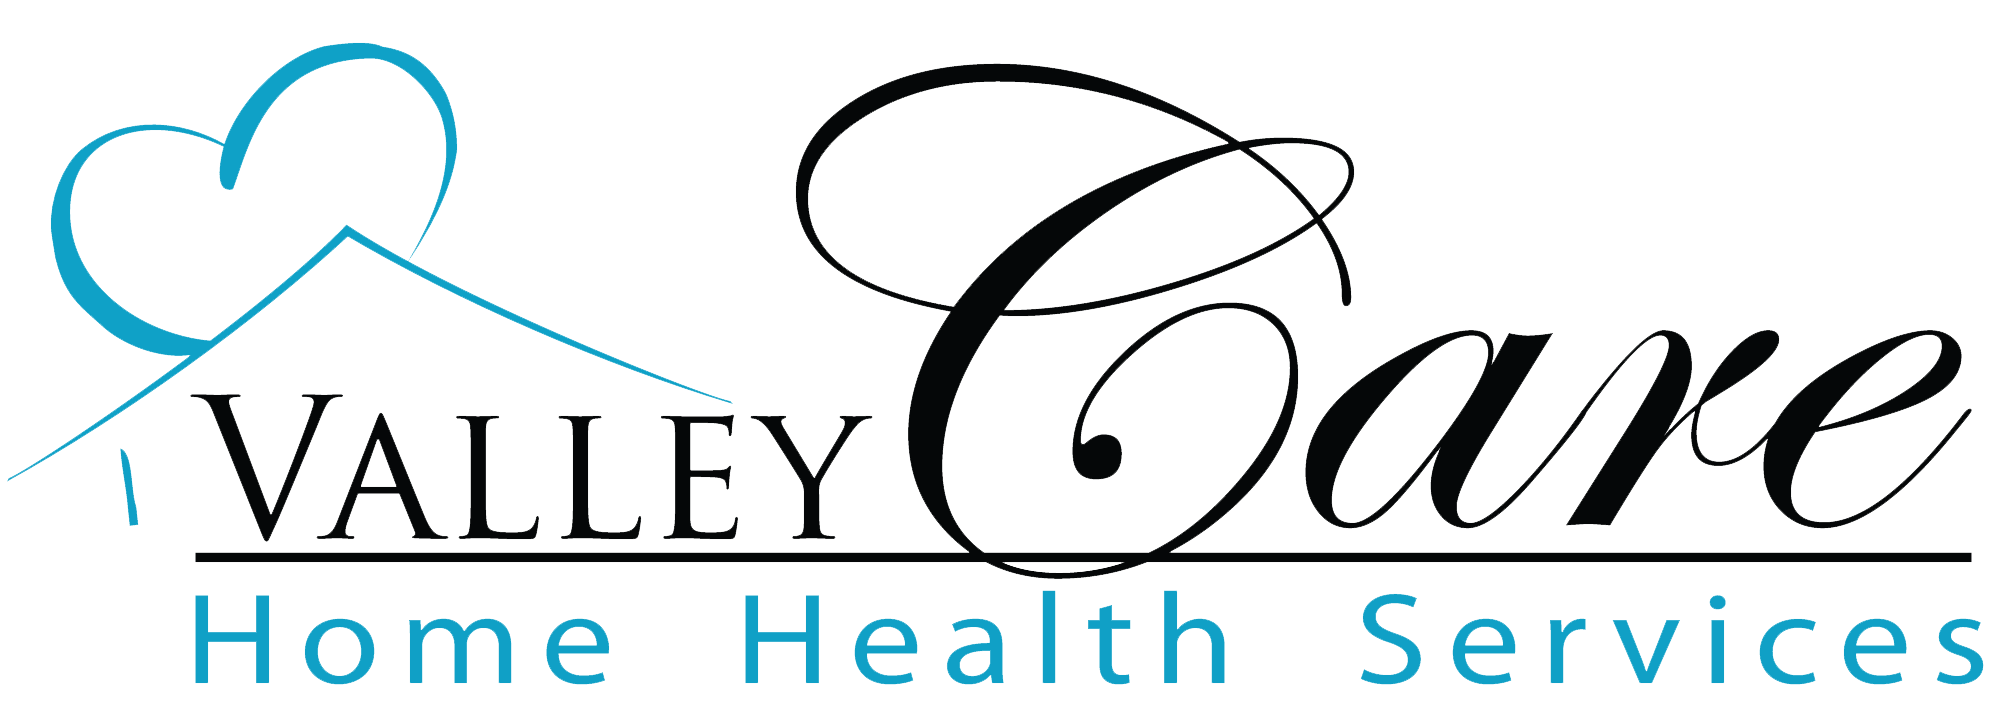 Valley Care Home Health Services